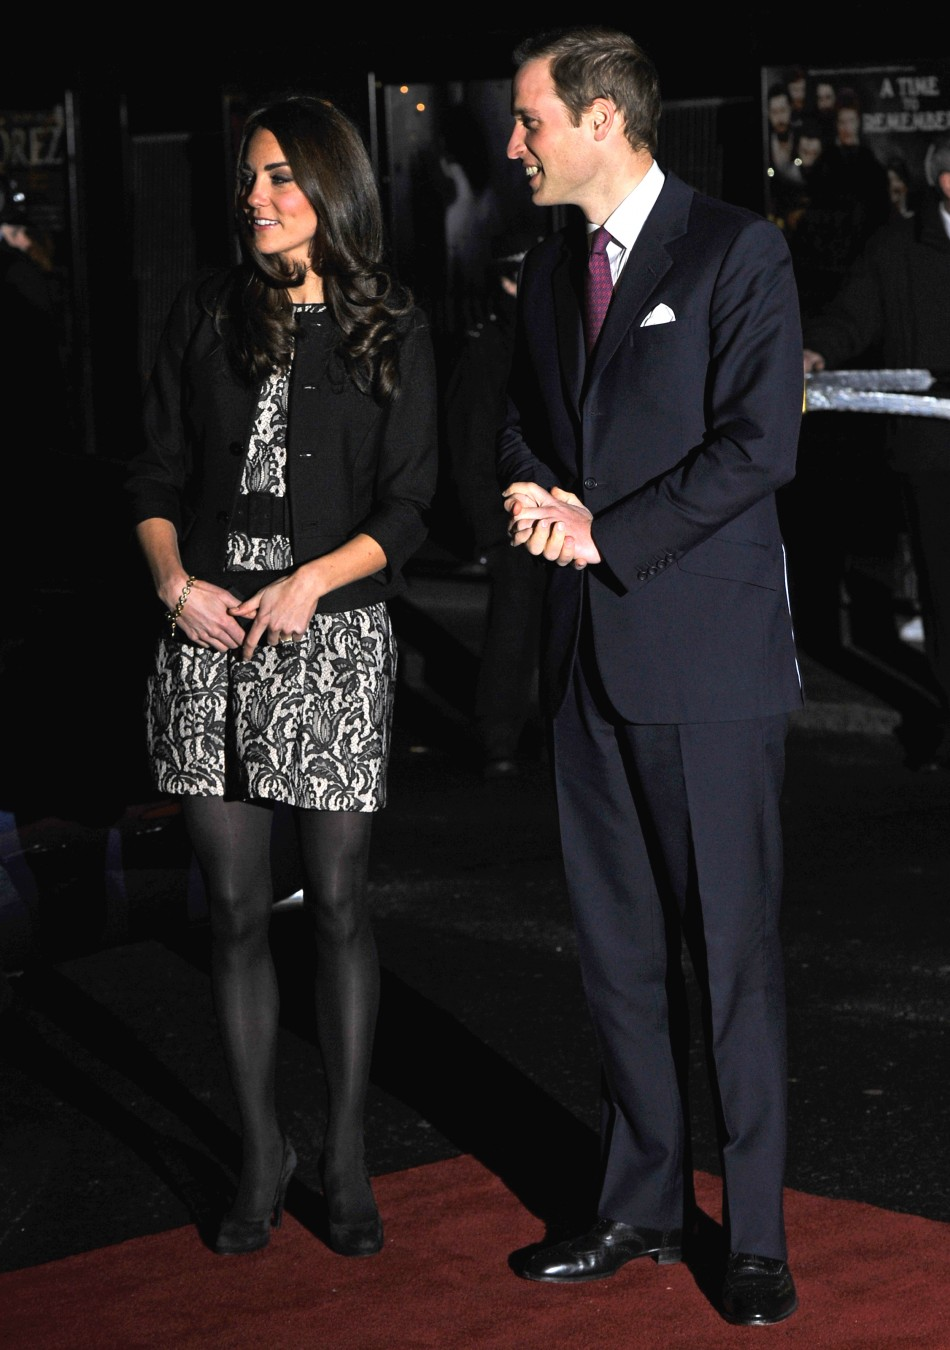 Prince William and Katherine at the Royal Albert Hall